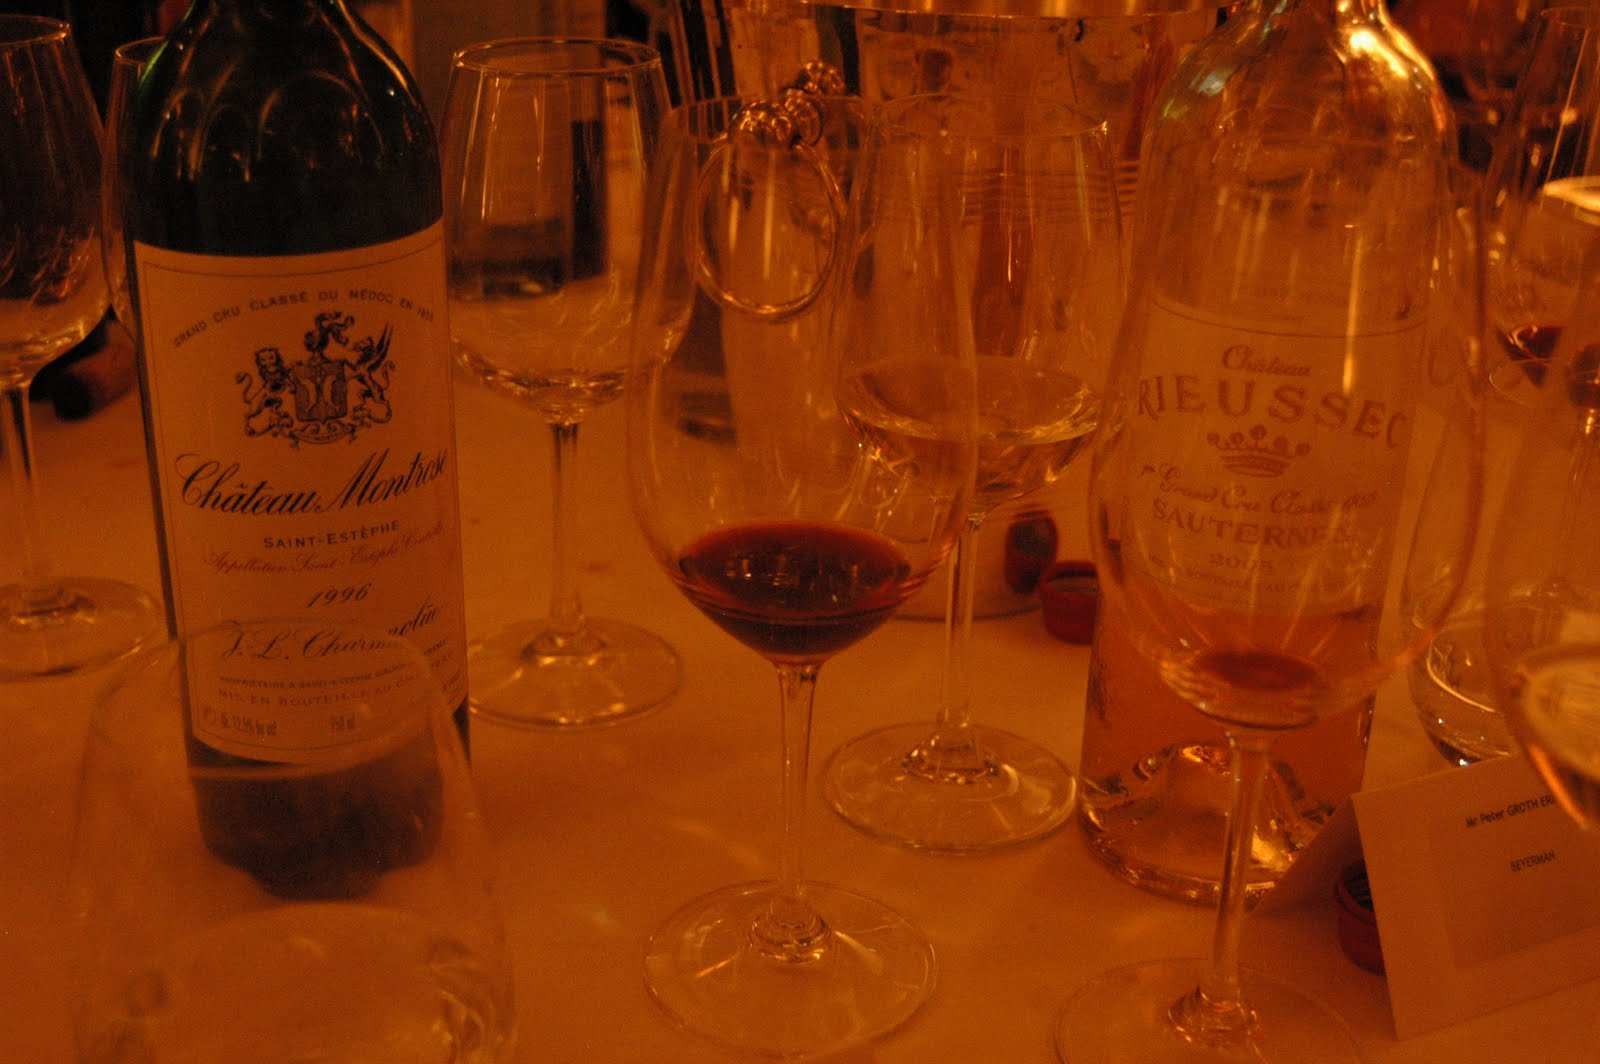 my wines and more: May 2011